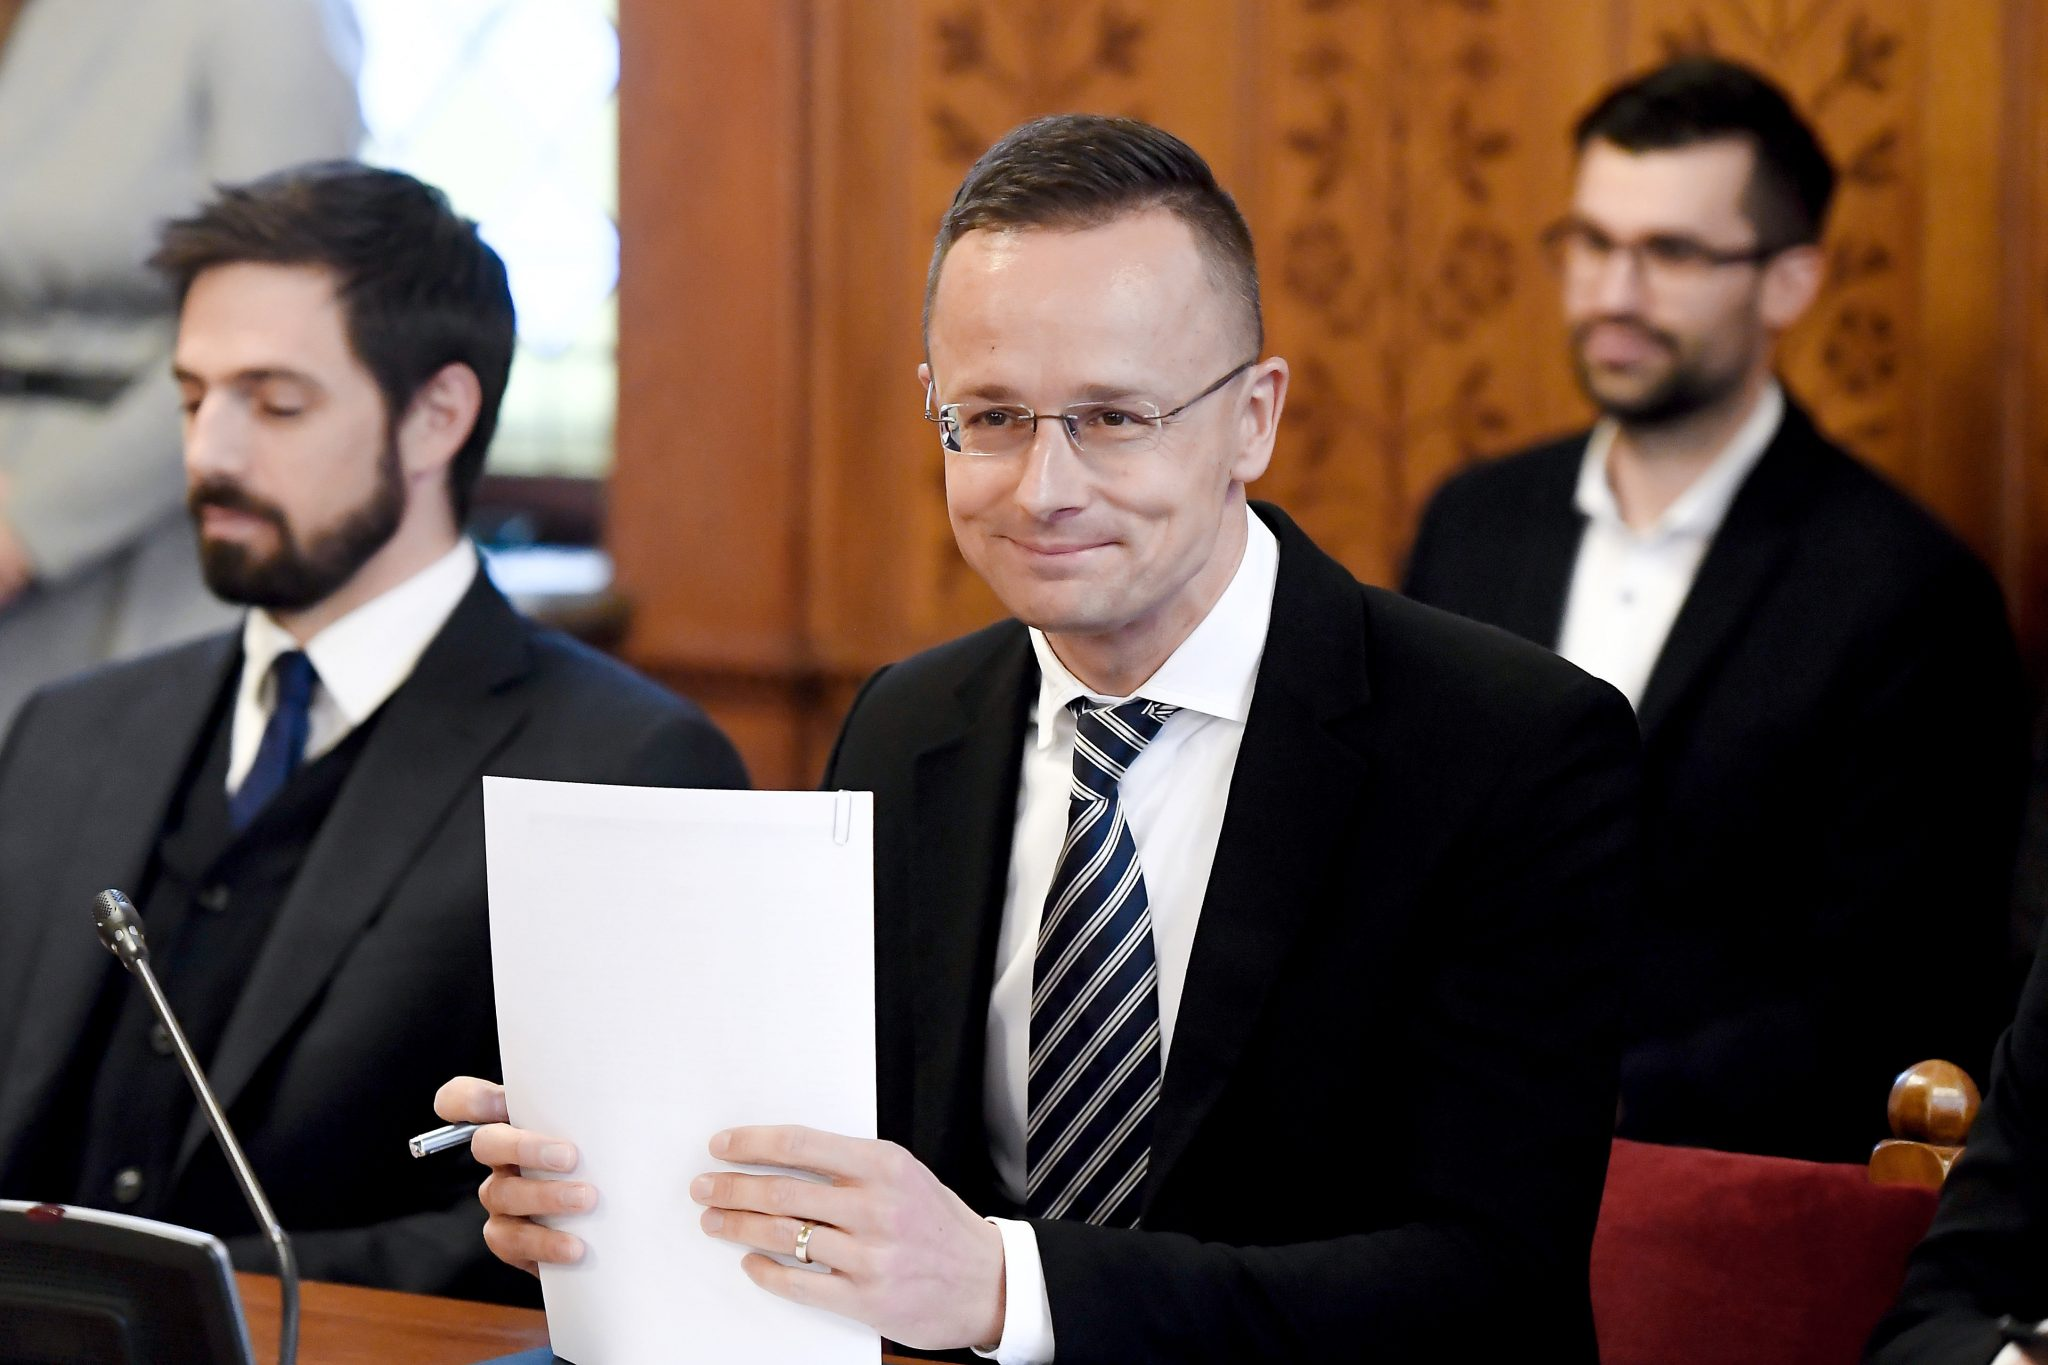 Szijjártó: Hungary Foreign Policy Has Achieved Its Goals post's picture